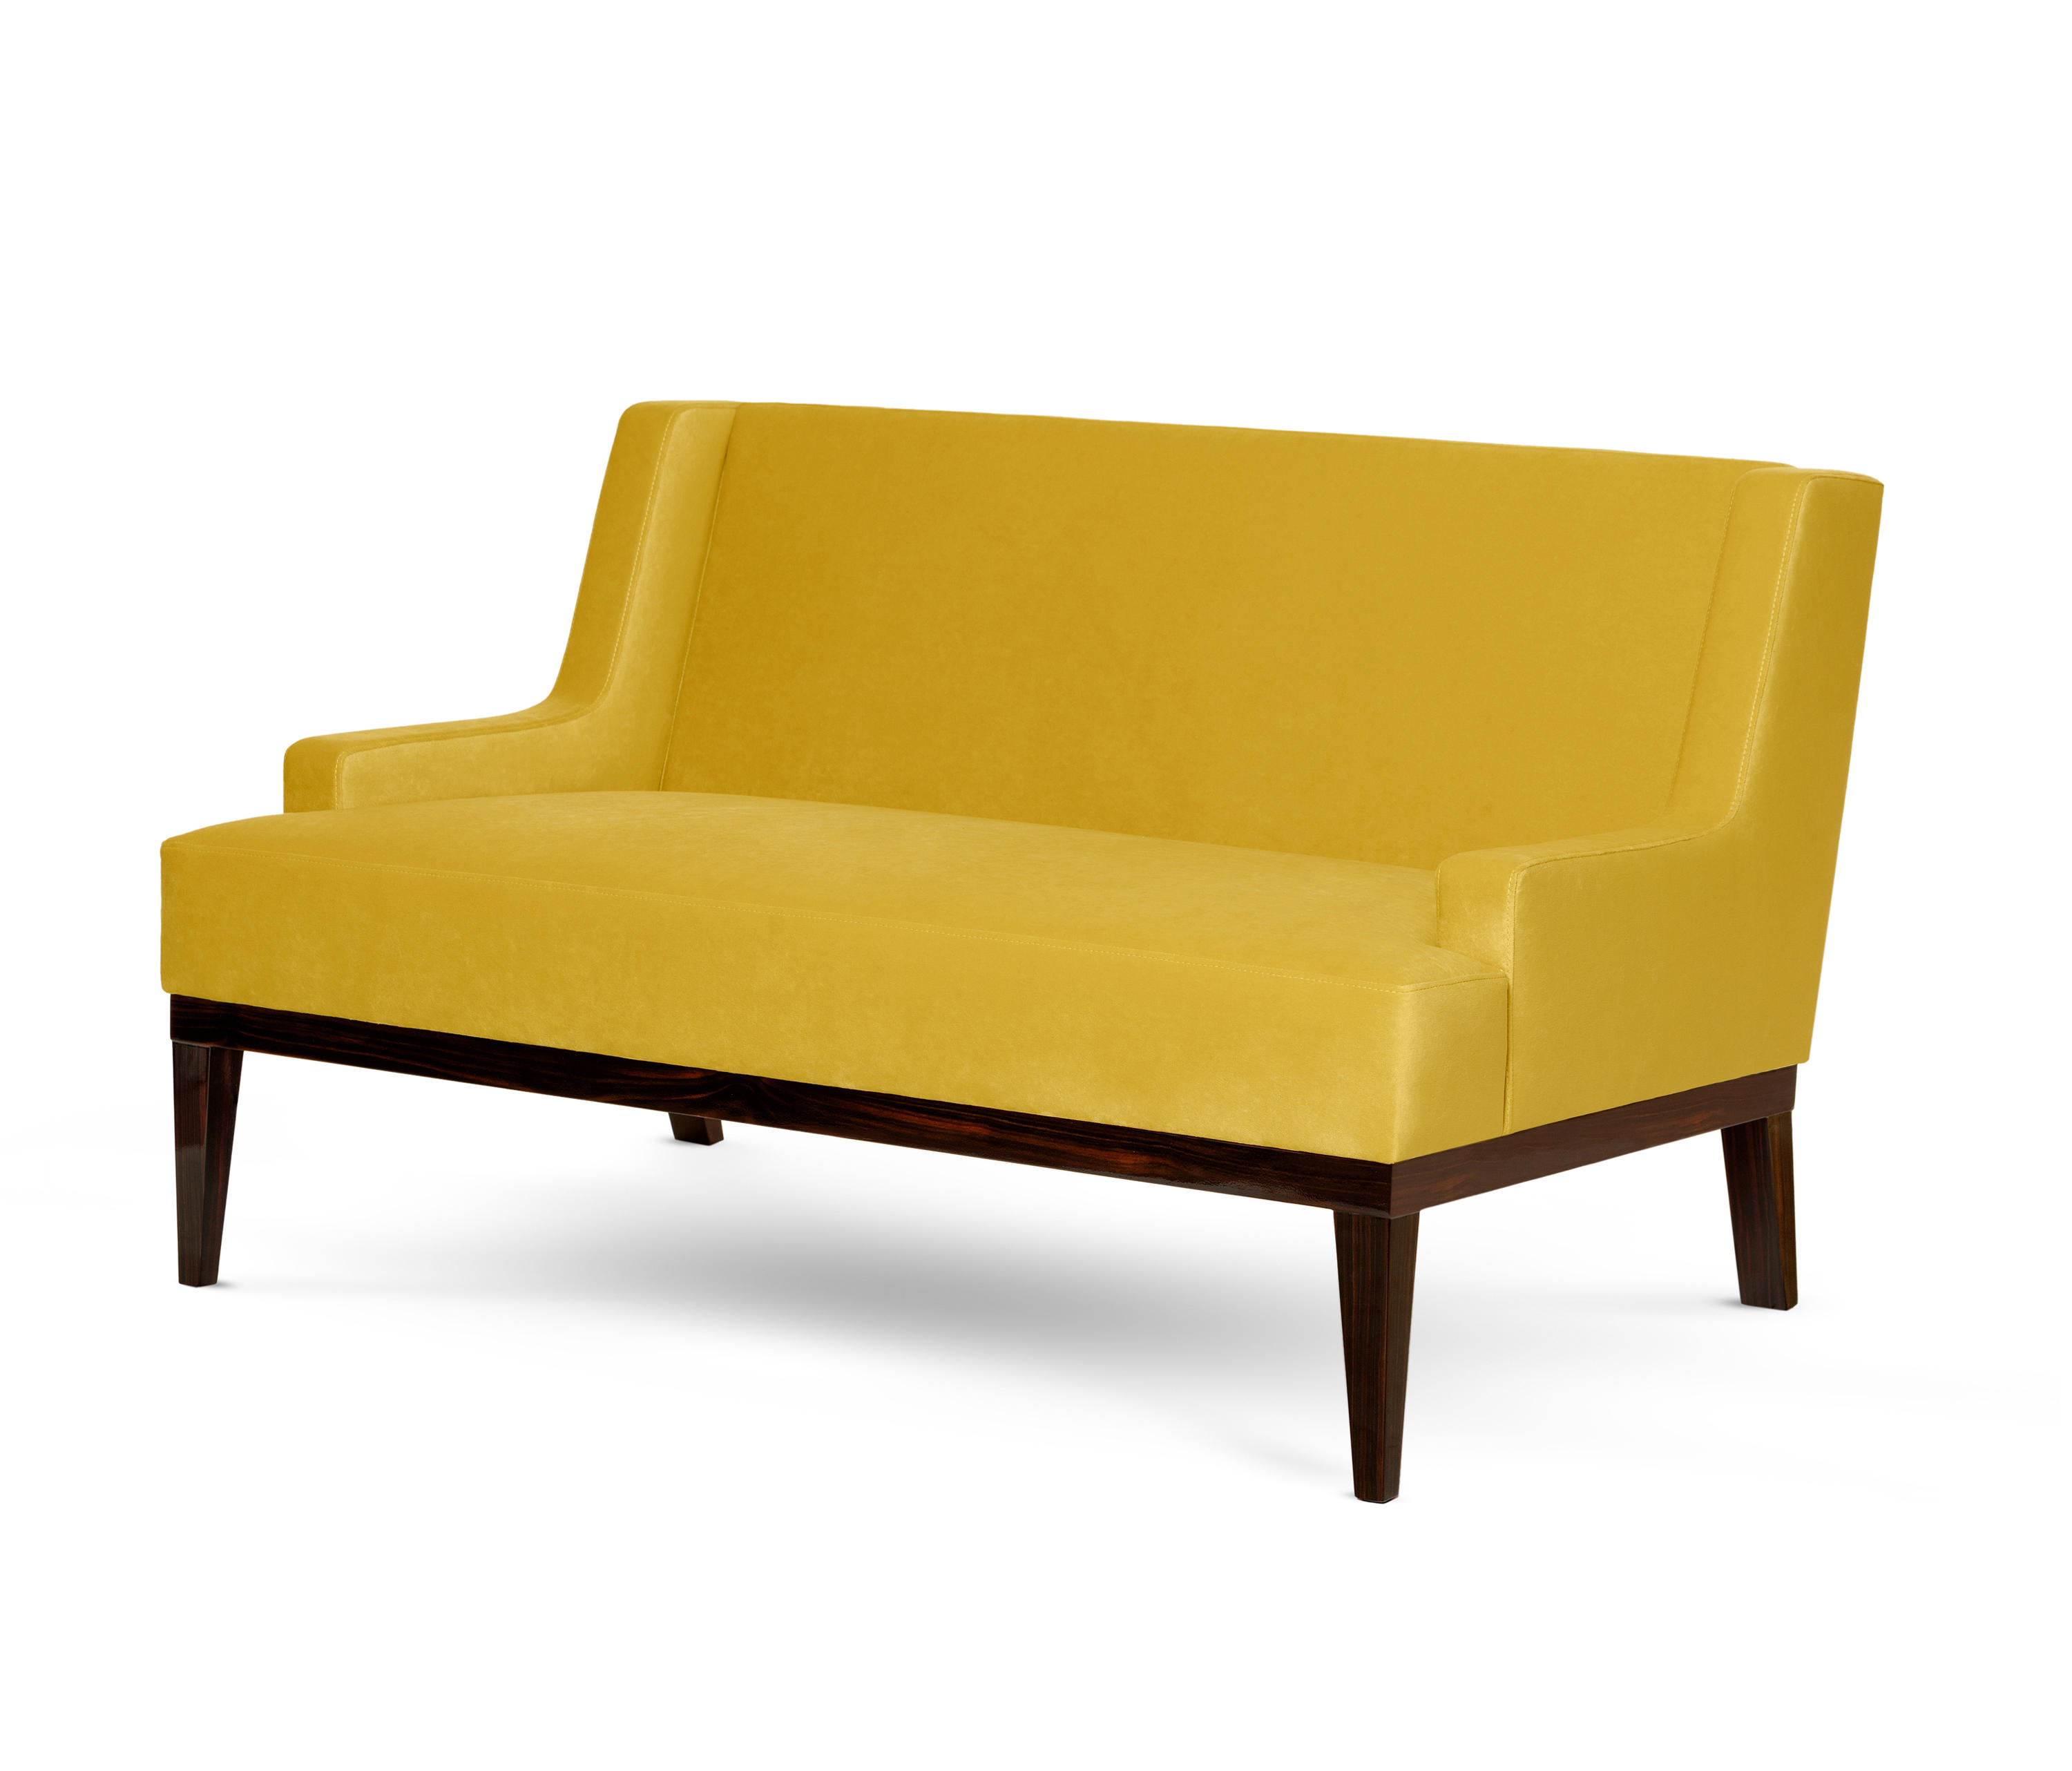 PRIVATE | 2 SEAT SOFA - Sofas from MUNNA | Architonic